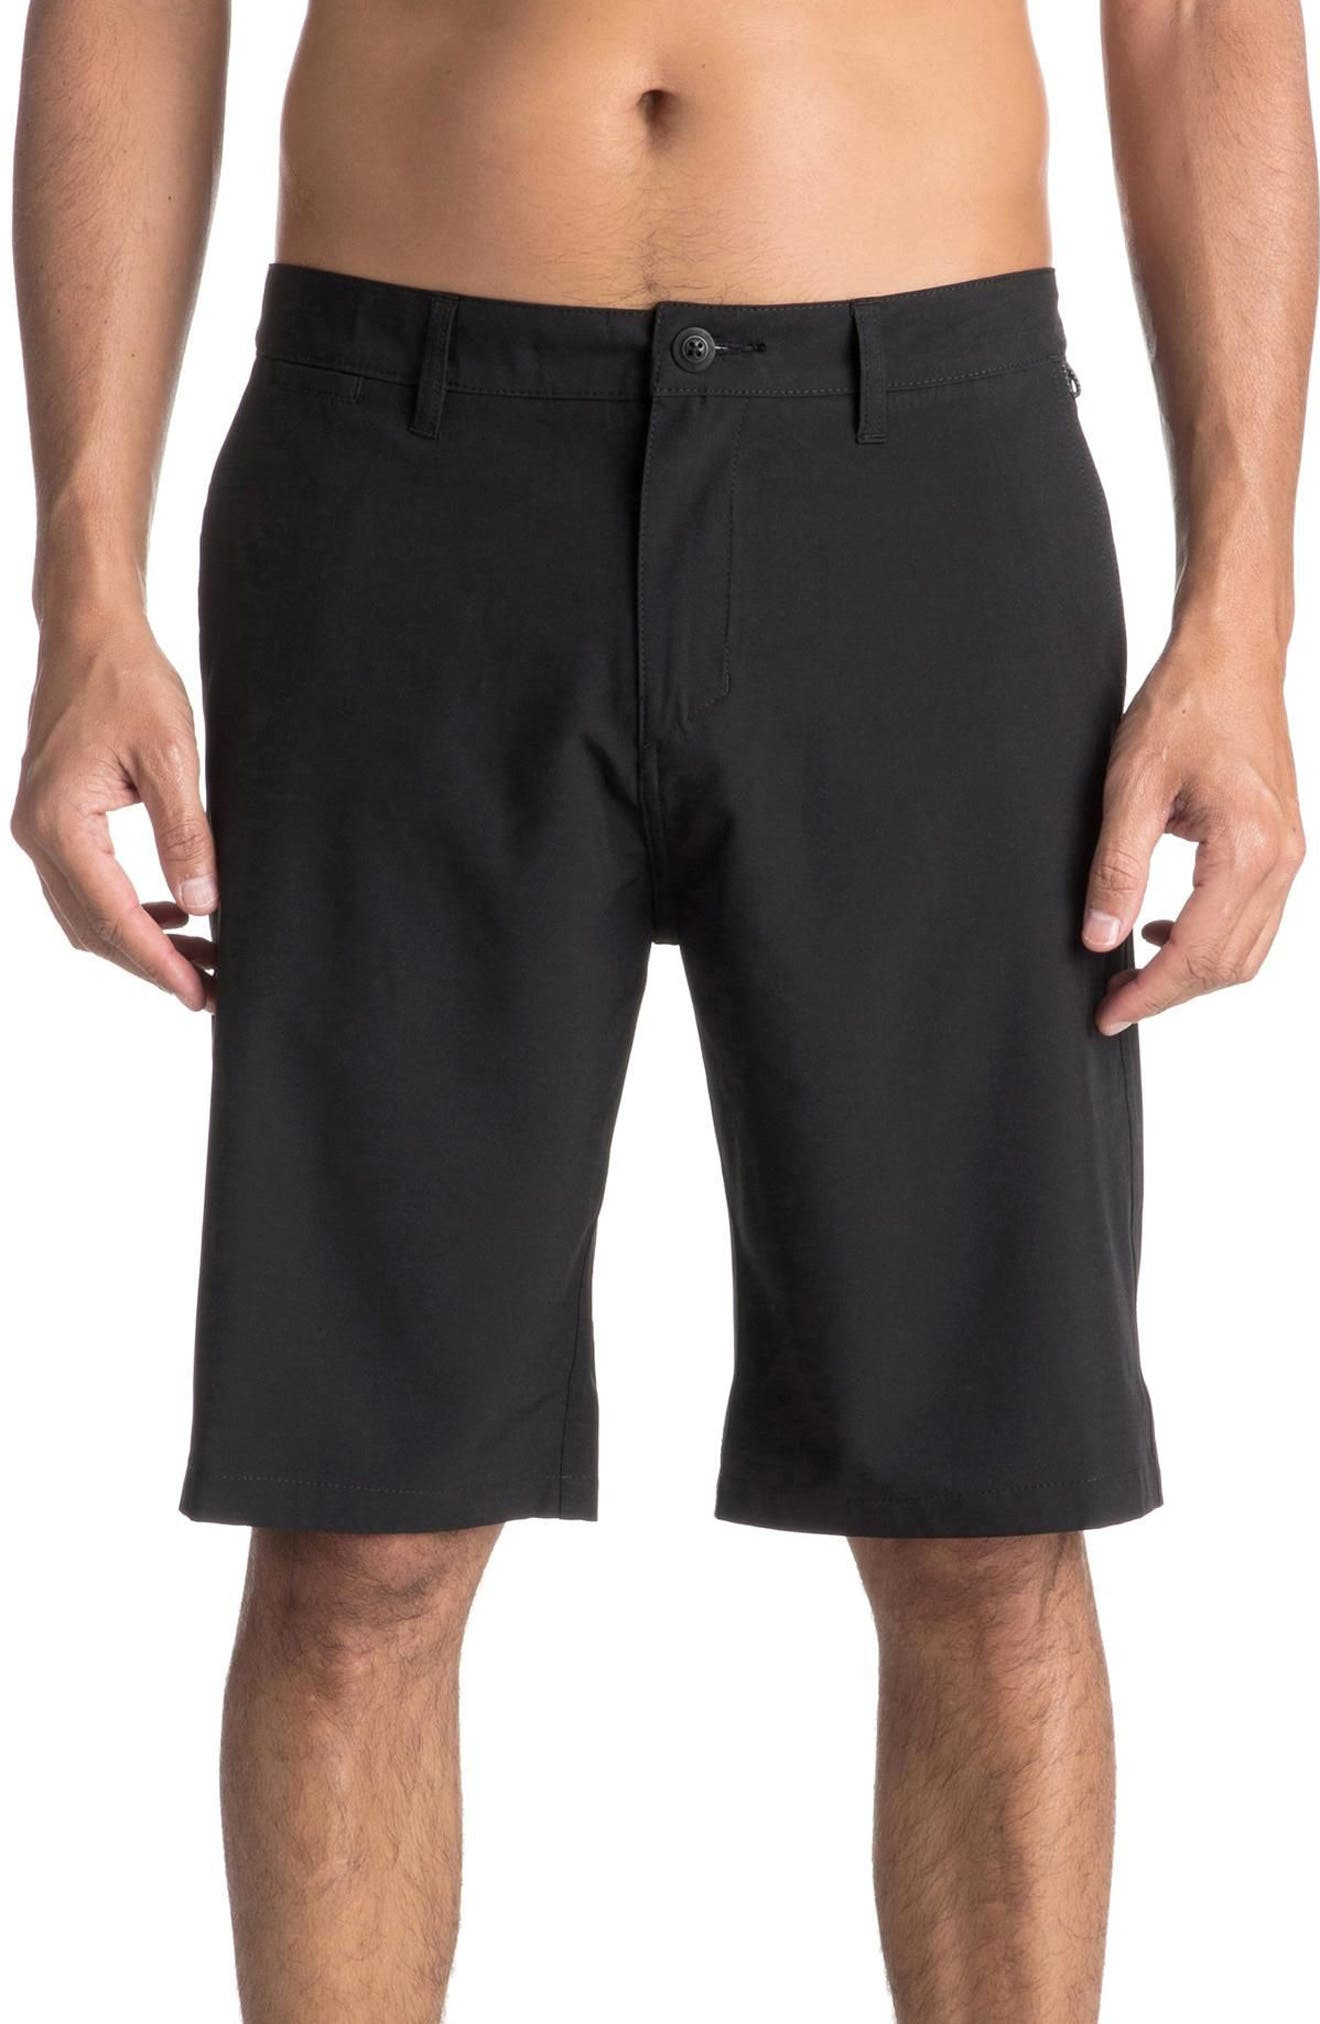 Union Amphibian Shorts,                         Main,                         color, Black